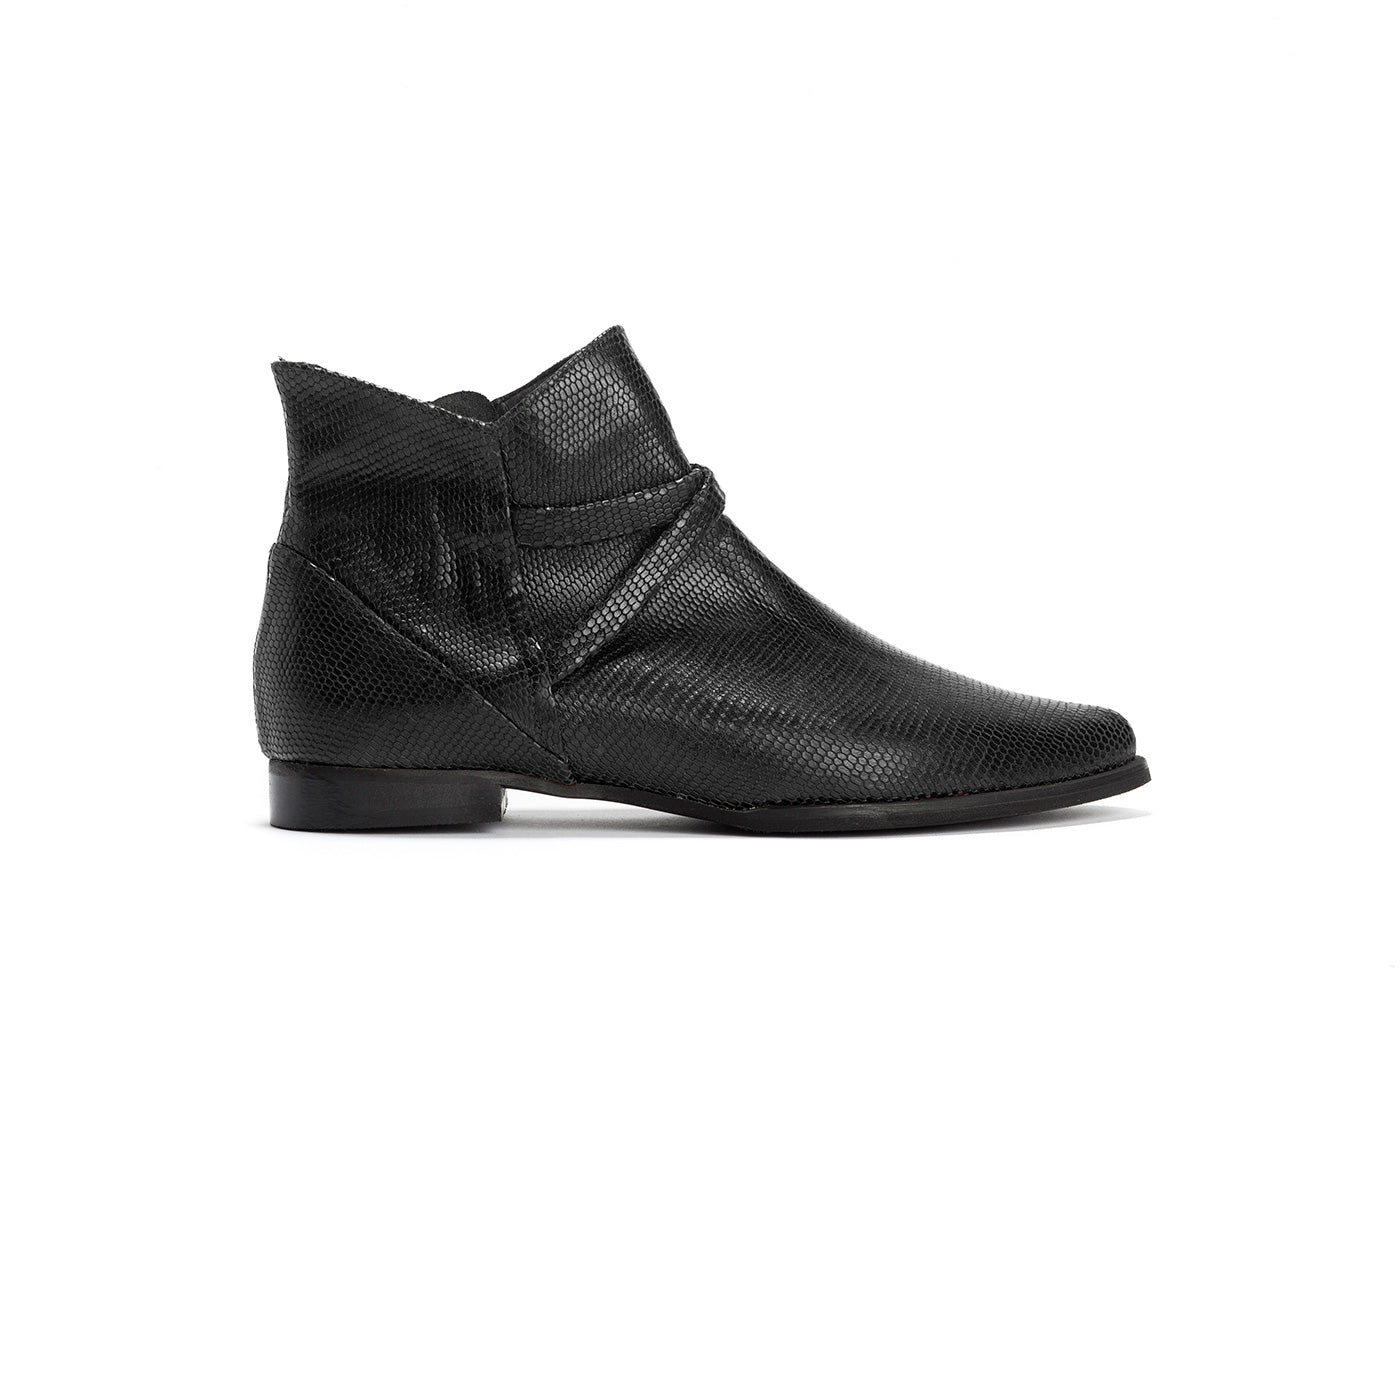 Brooke - Black Flat Ankle Boots